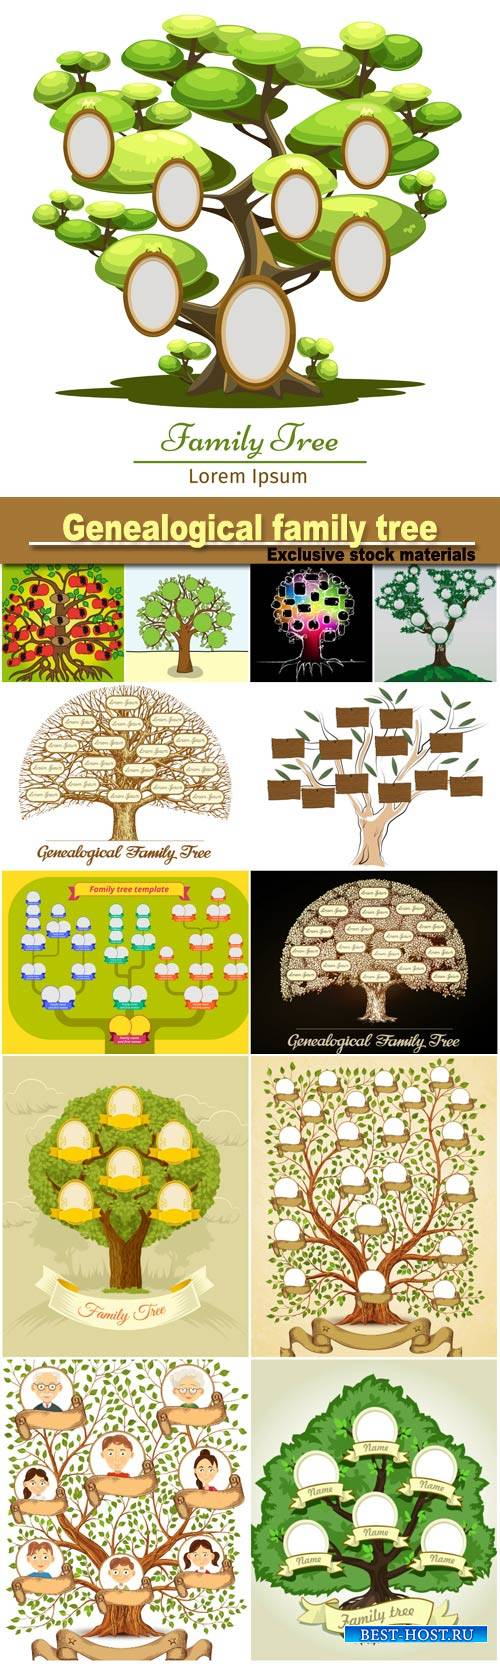 Vintage genealogical family tree, hand drawn sketch vector illustration